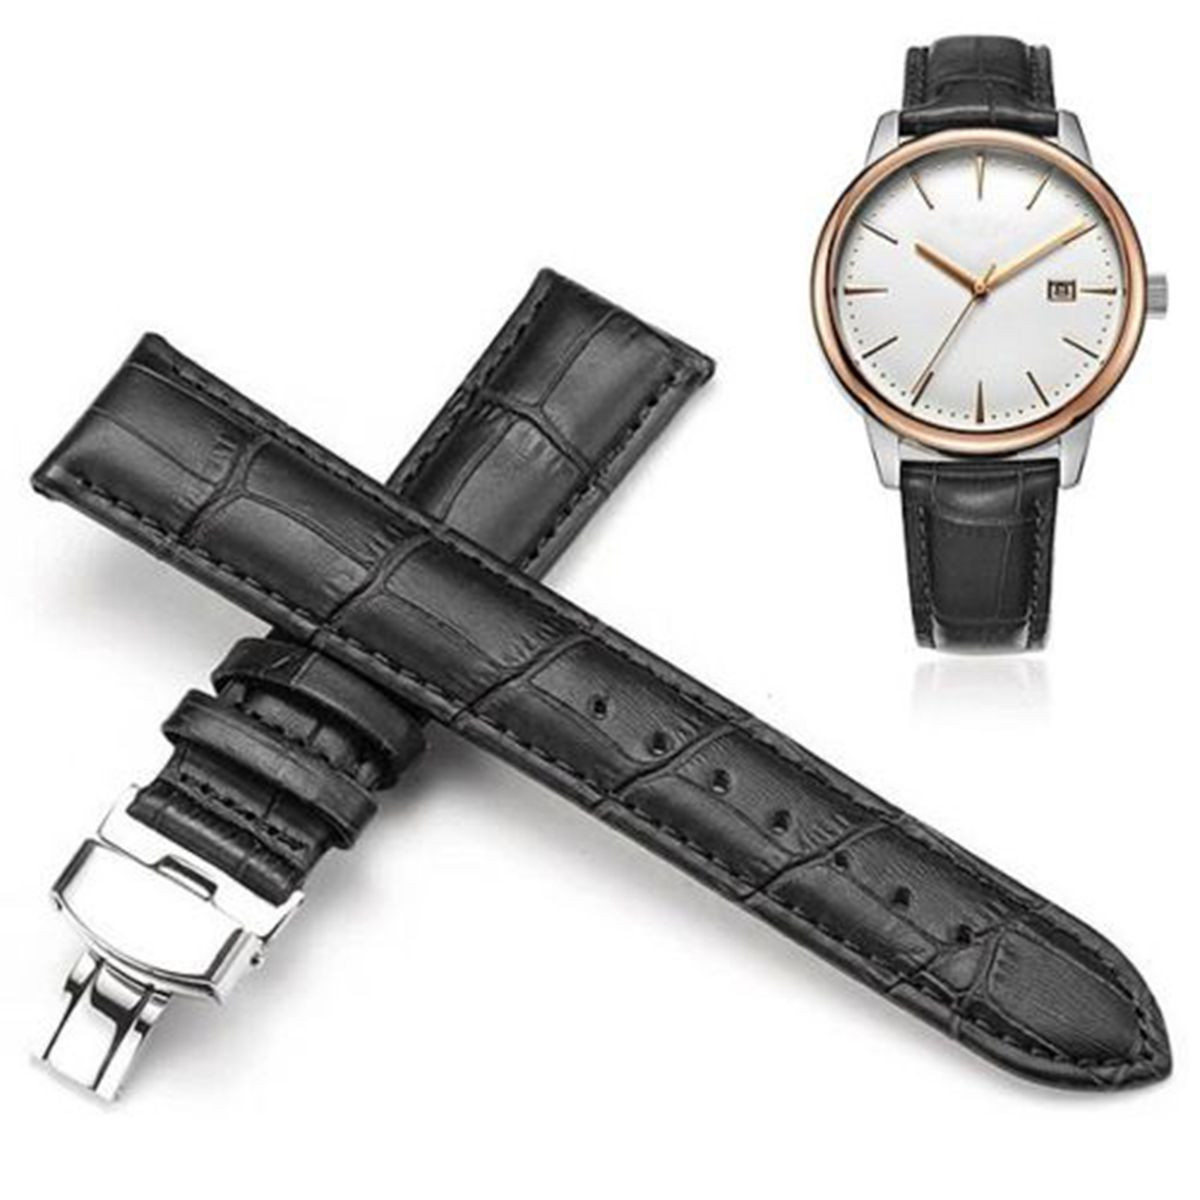 1PC Genuine Leather Watchbands Fashion Classic Replacement Strap Stainless Steel Butterfly Clasp Buckle 16mm~24mm Watch Strap genuine leather strap polished stainless steel butterfly clasp deployant buckle watch band 16 24mm